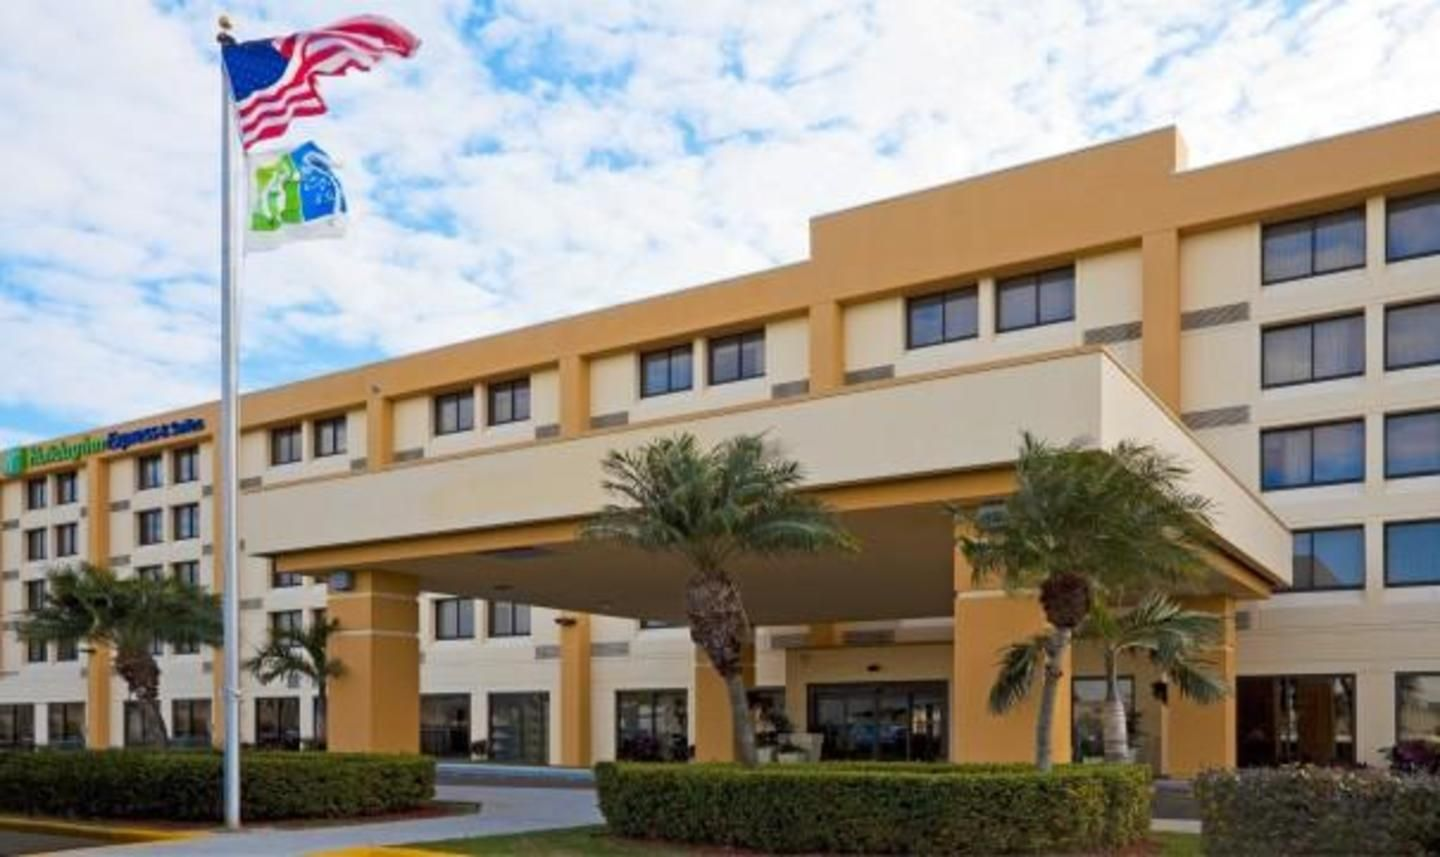 Holiday Inn Hialeah/Miami Lakes